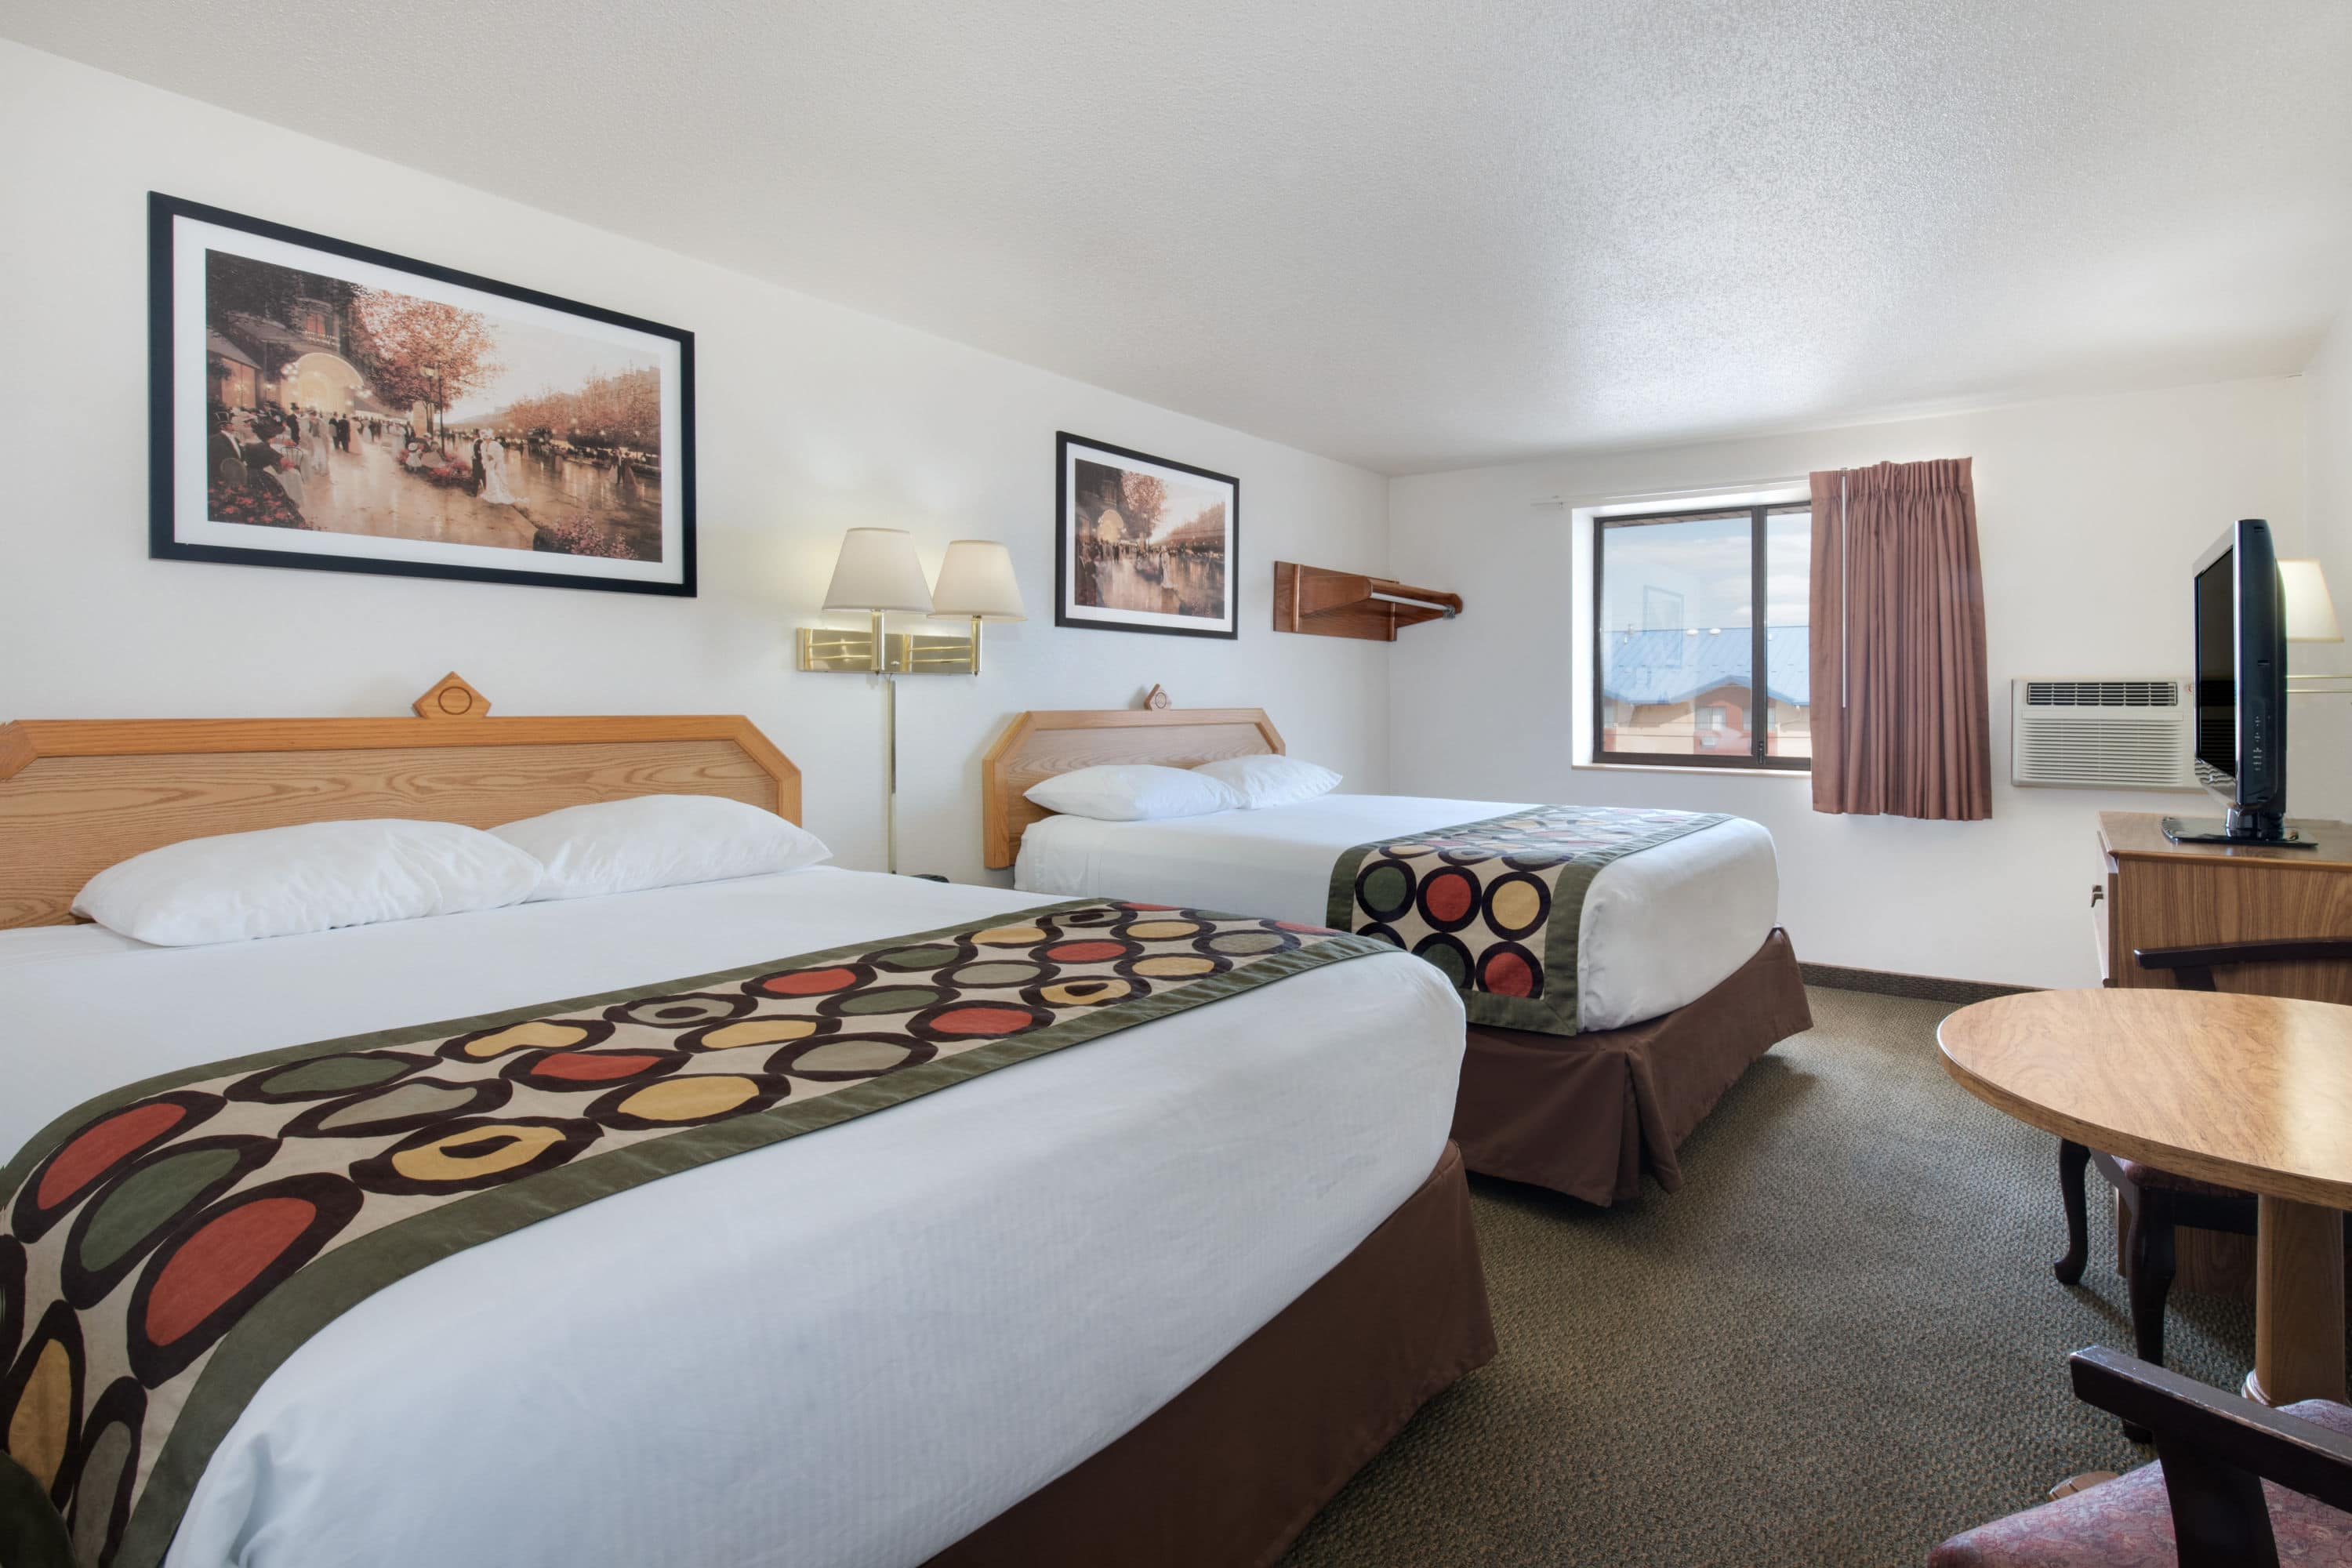 Guest Room At The Super 8 Rapid City/Lacrosse St In Rapid City, South